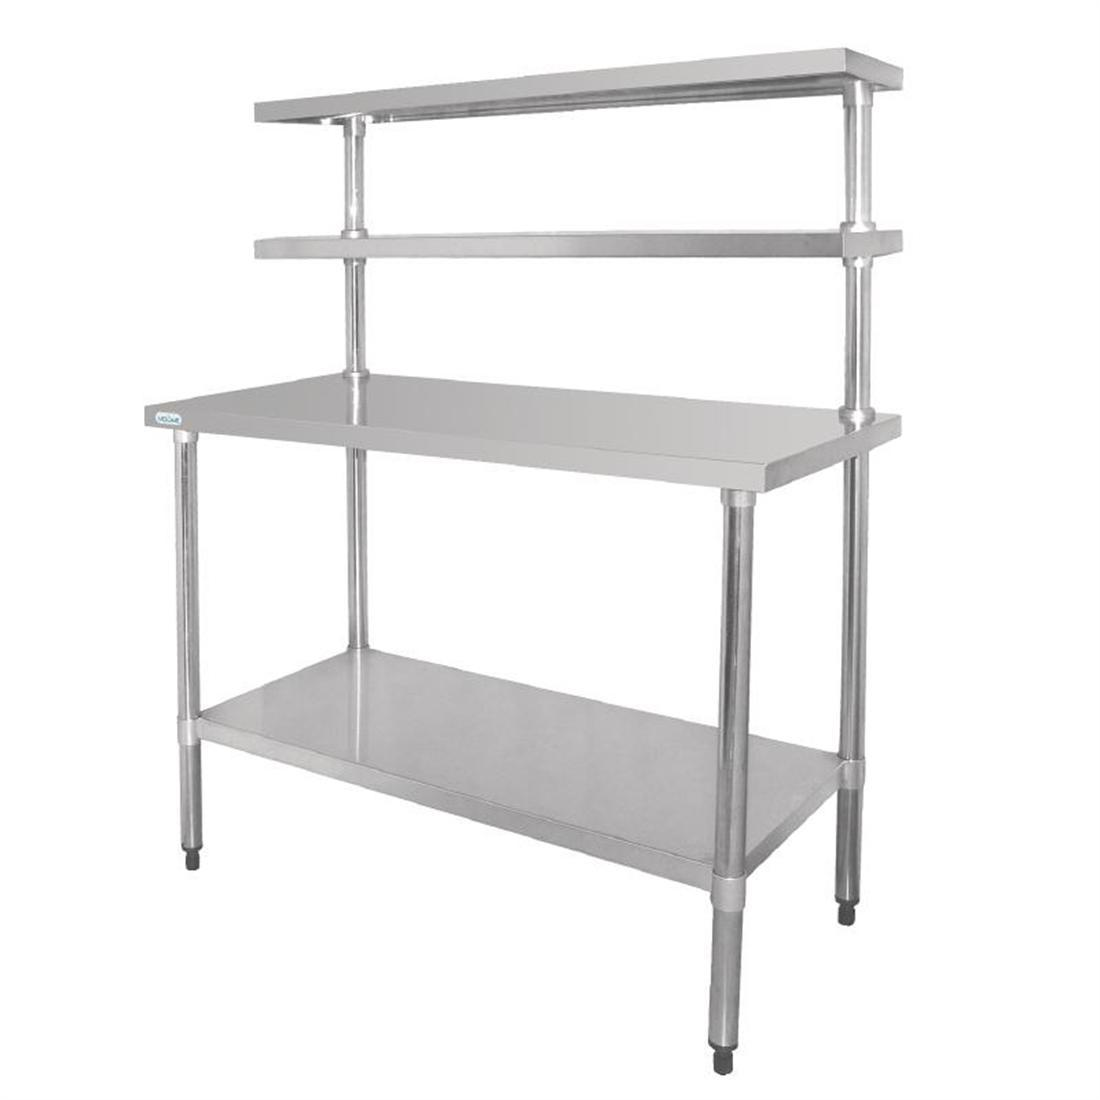 Vogue Stainless Steel Prep Station 1800x600mm - Each - CC360